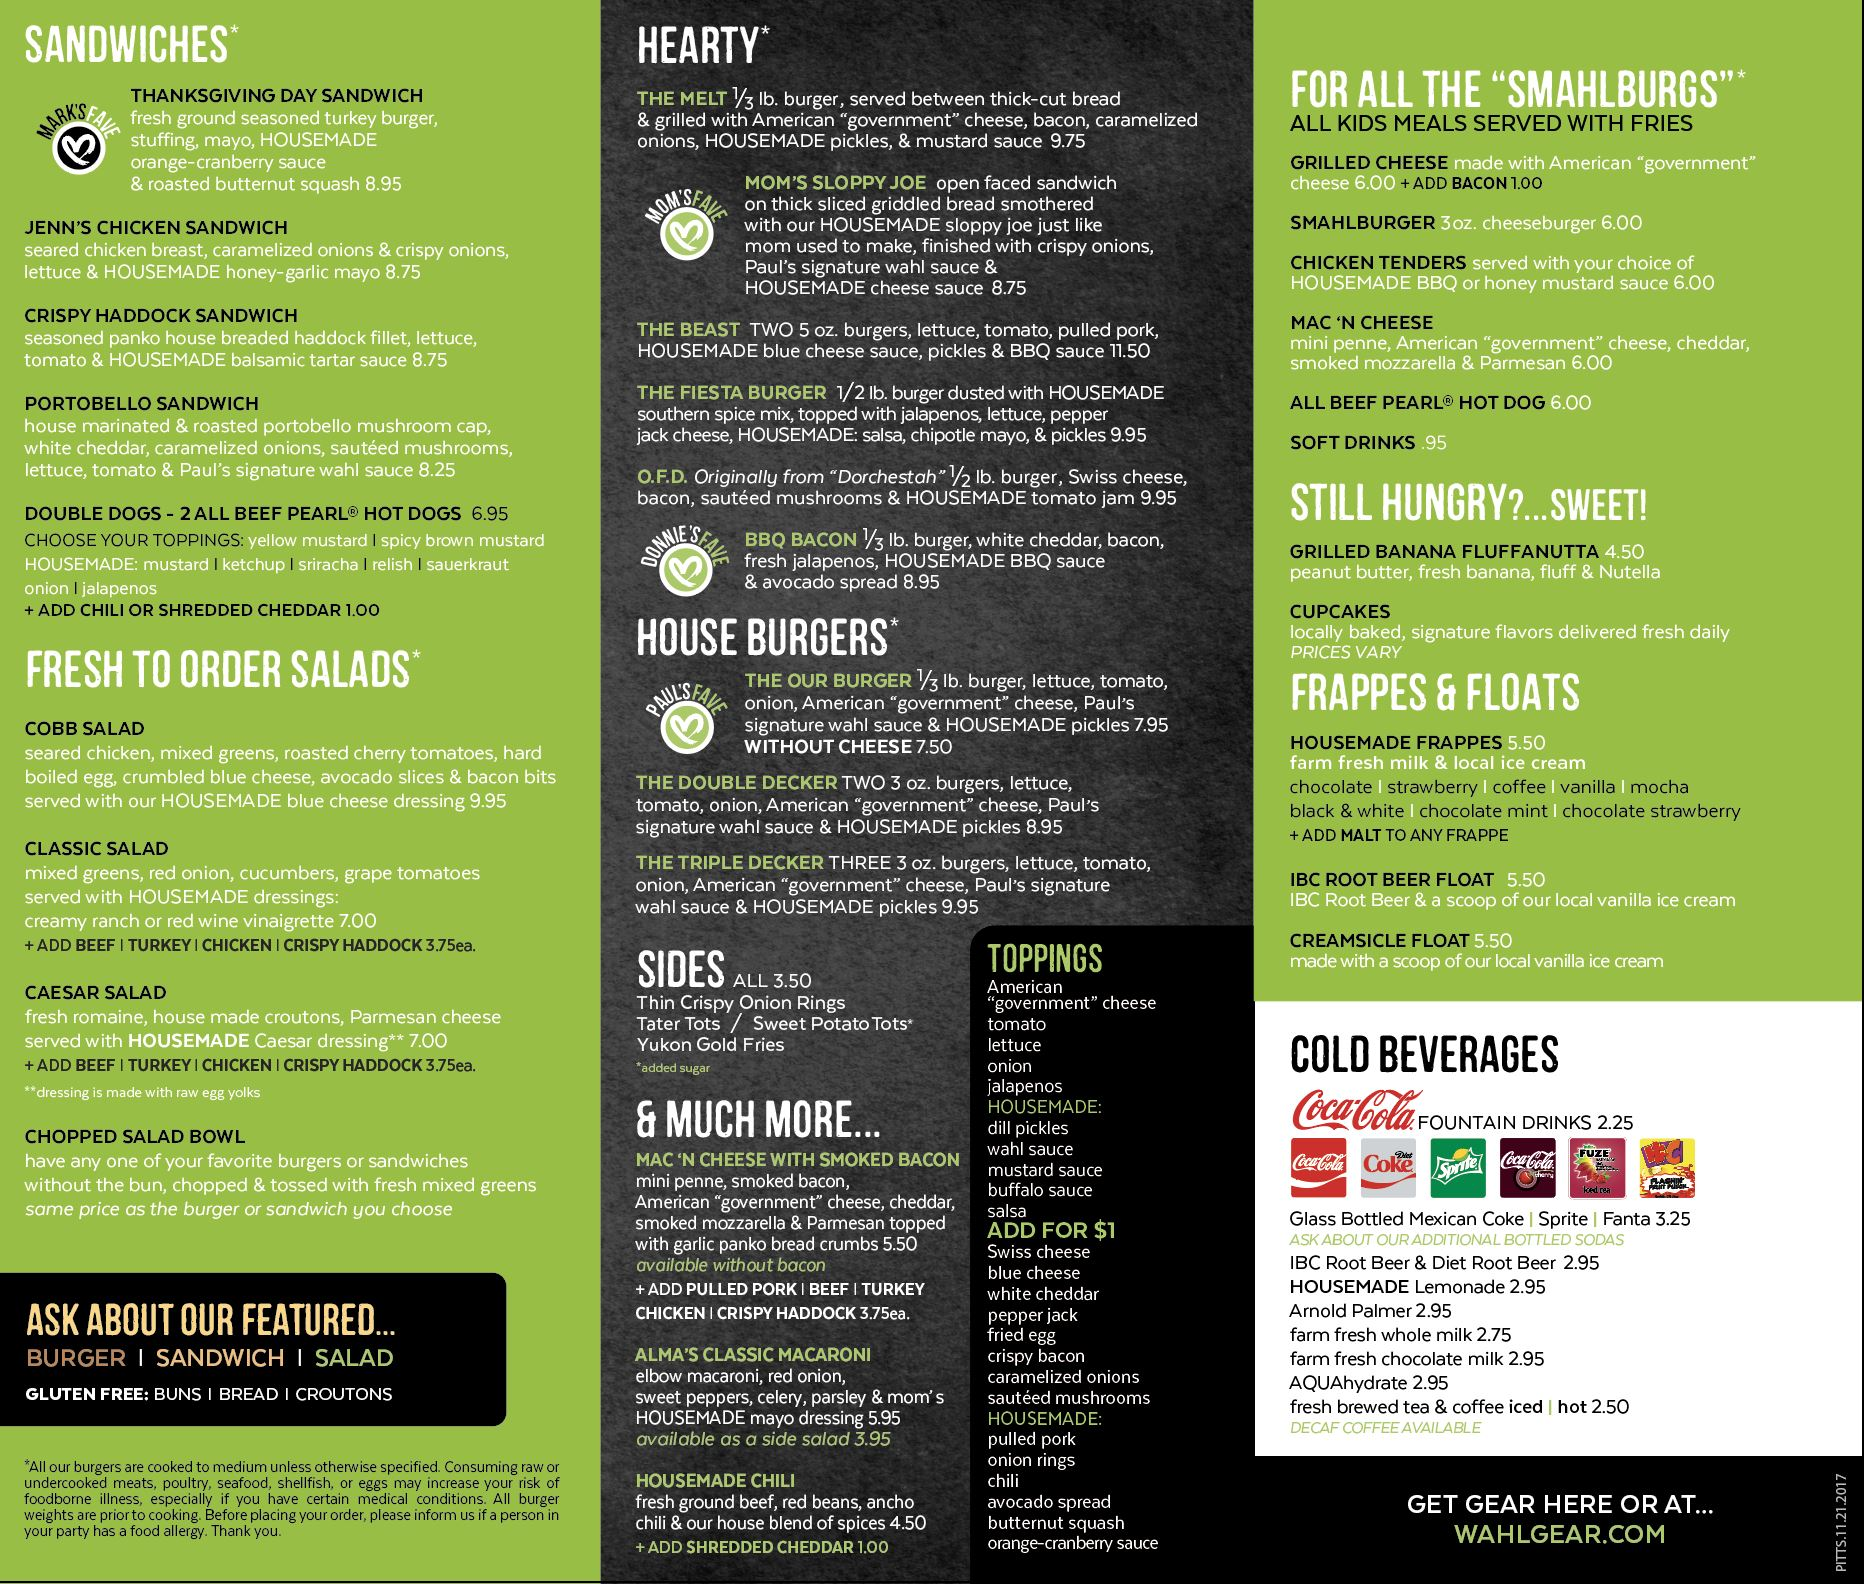 Screen-Shot-2017-12-11-at-4.34.39-PM.png The Pittsburgh menu for the first Wahlburgers location